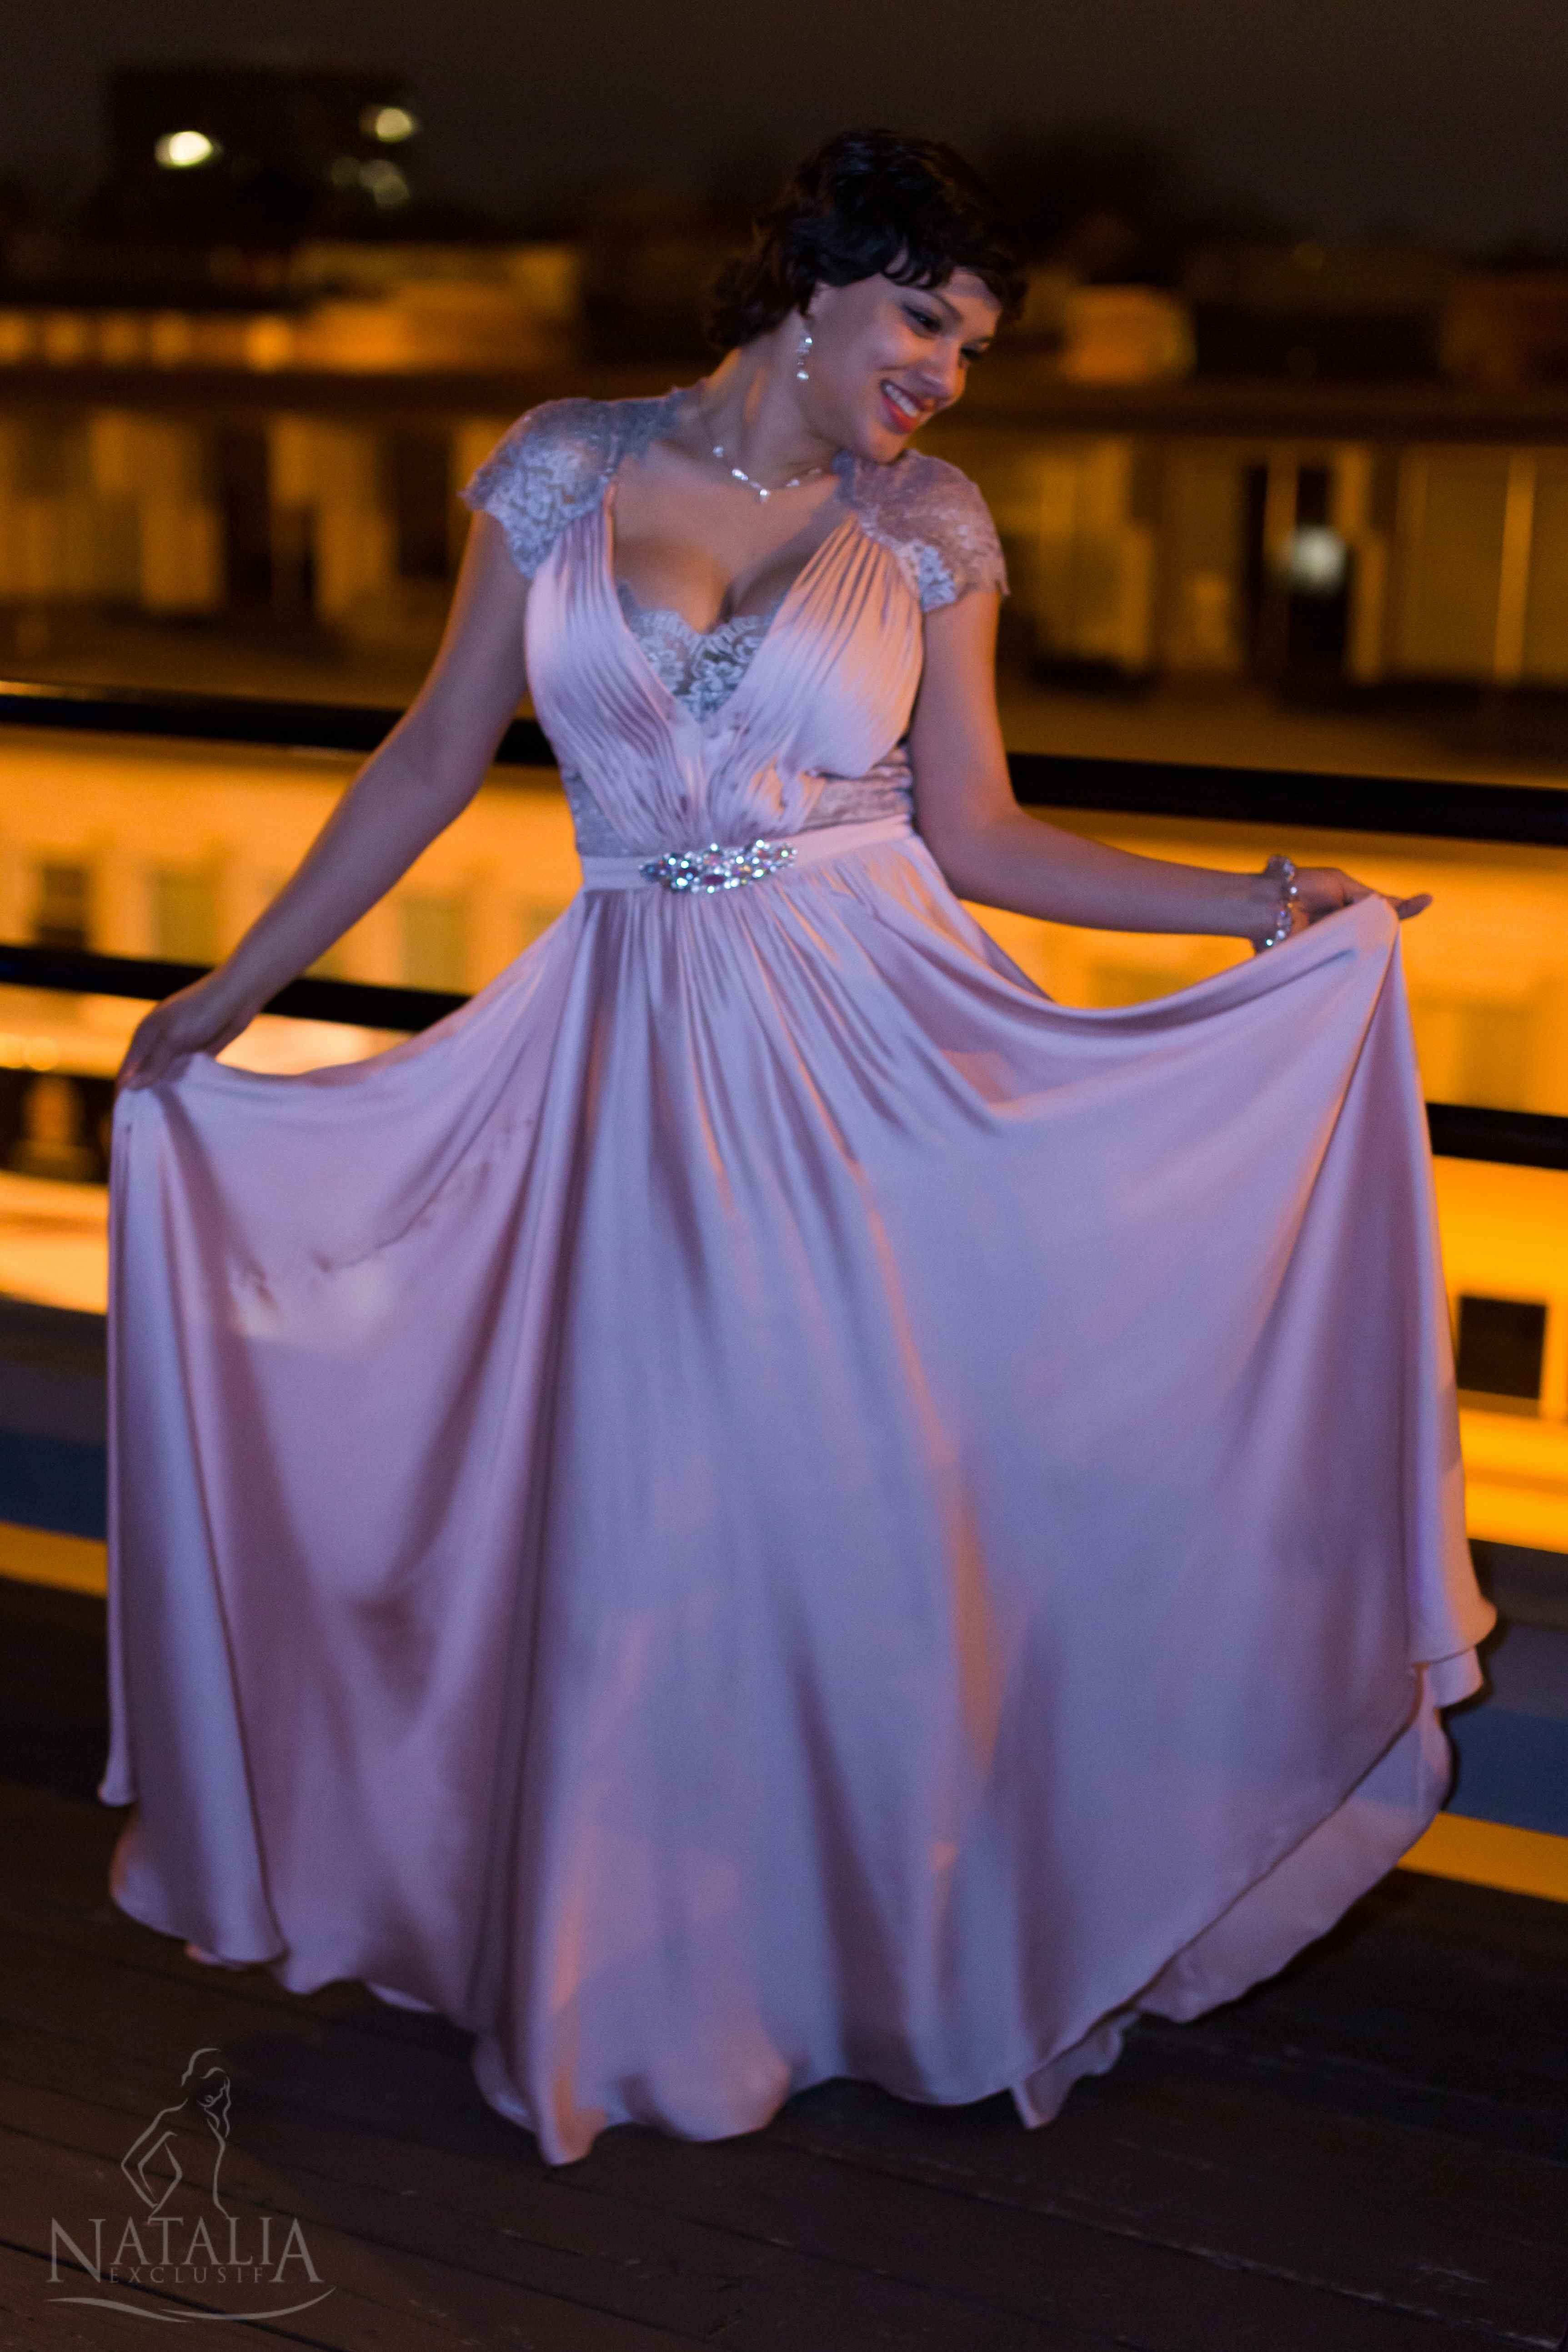 Beautiful evening gown prom dress boutique natalia exclusif